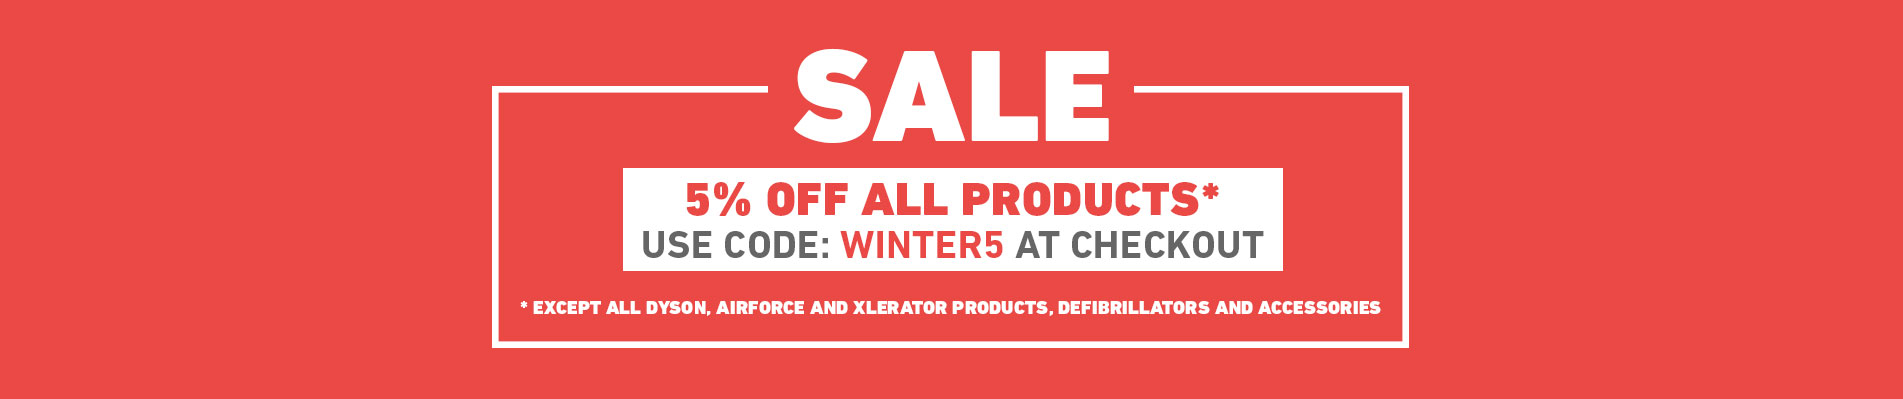 SALE - 5% off all products